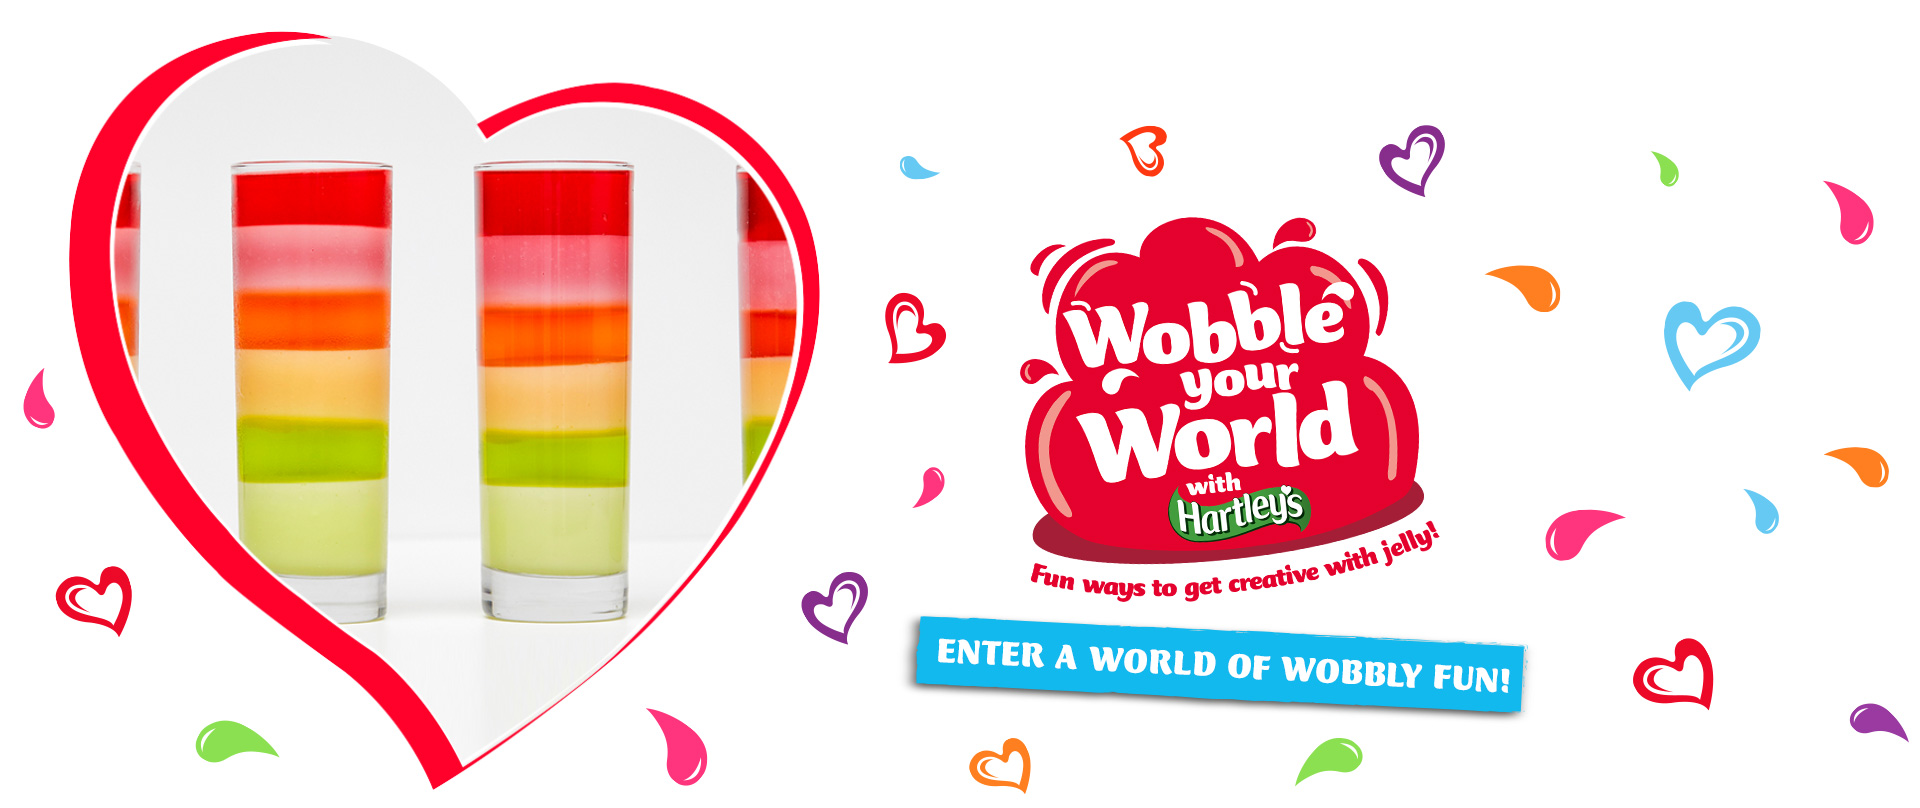 Enter a world of wobbly fun!